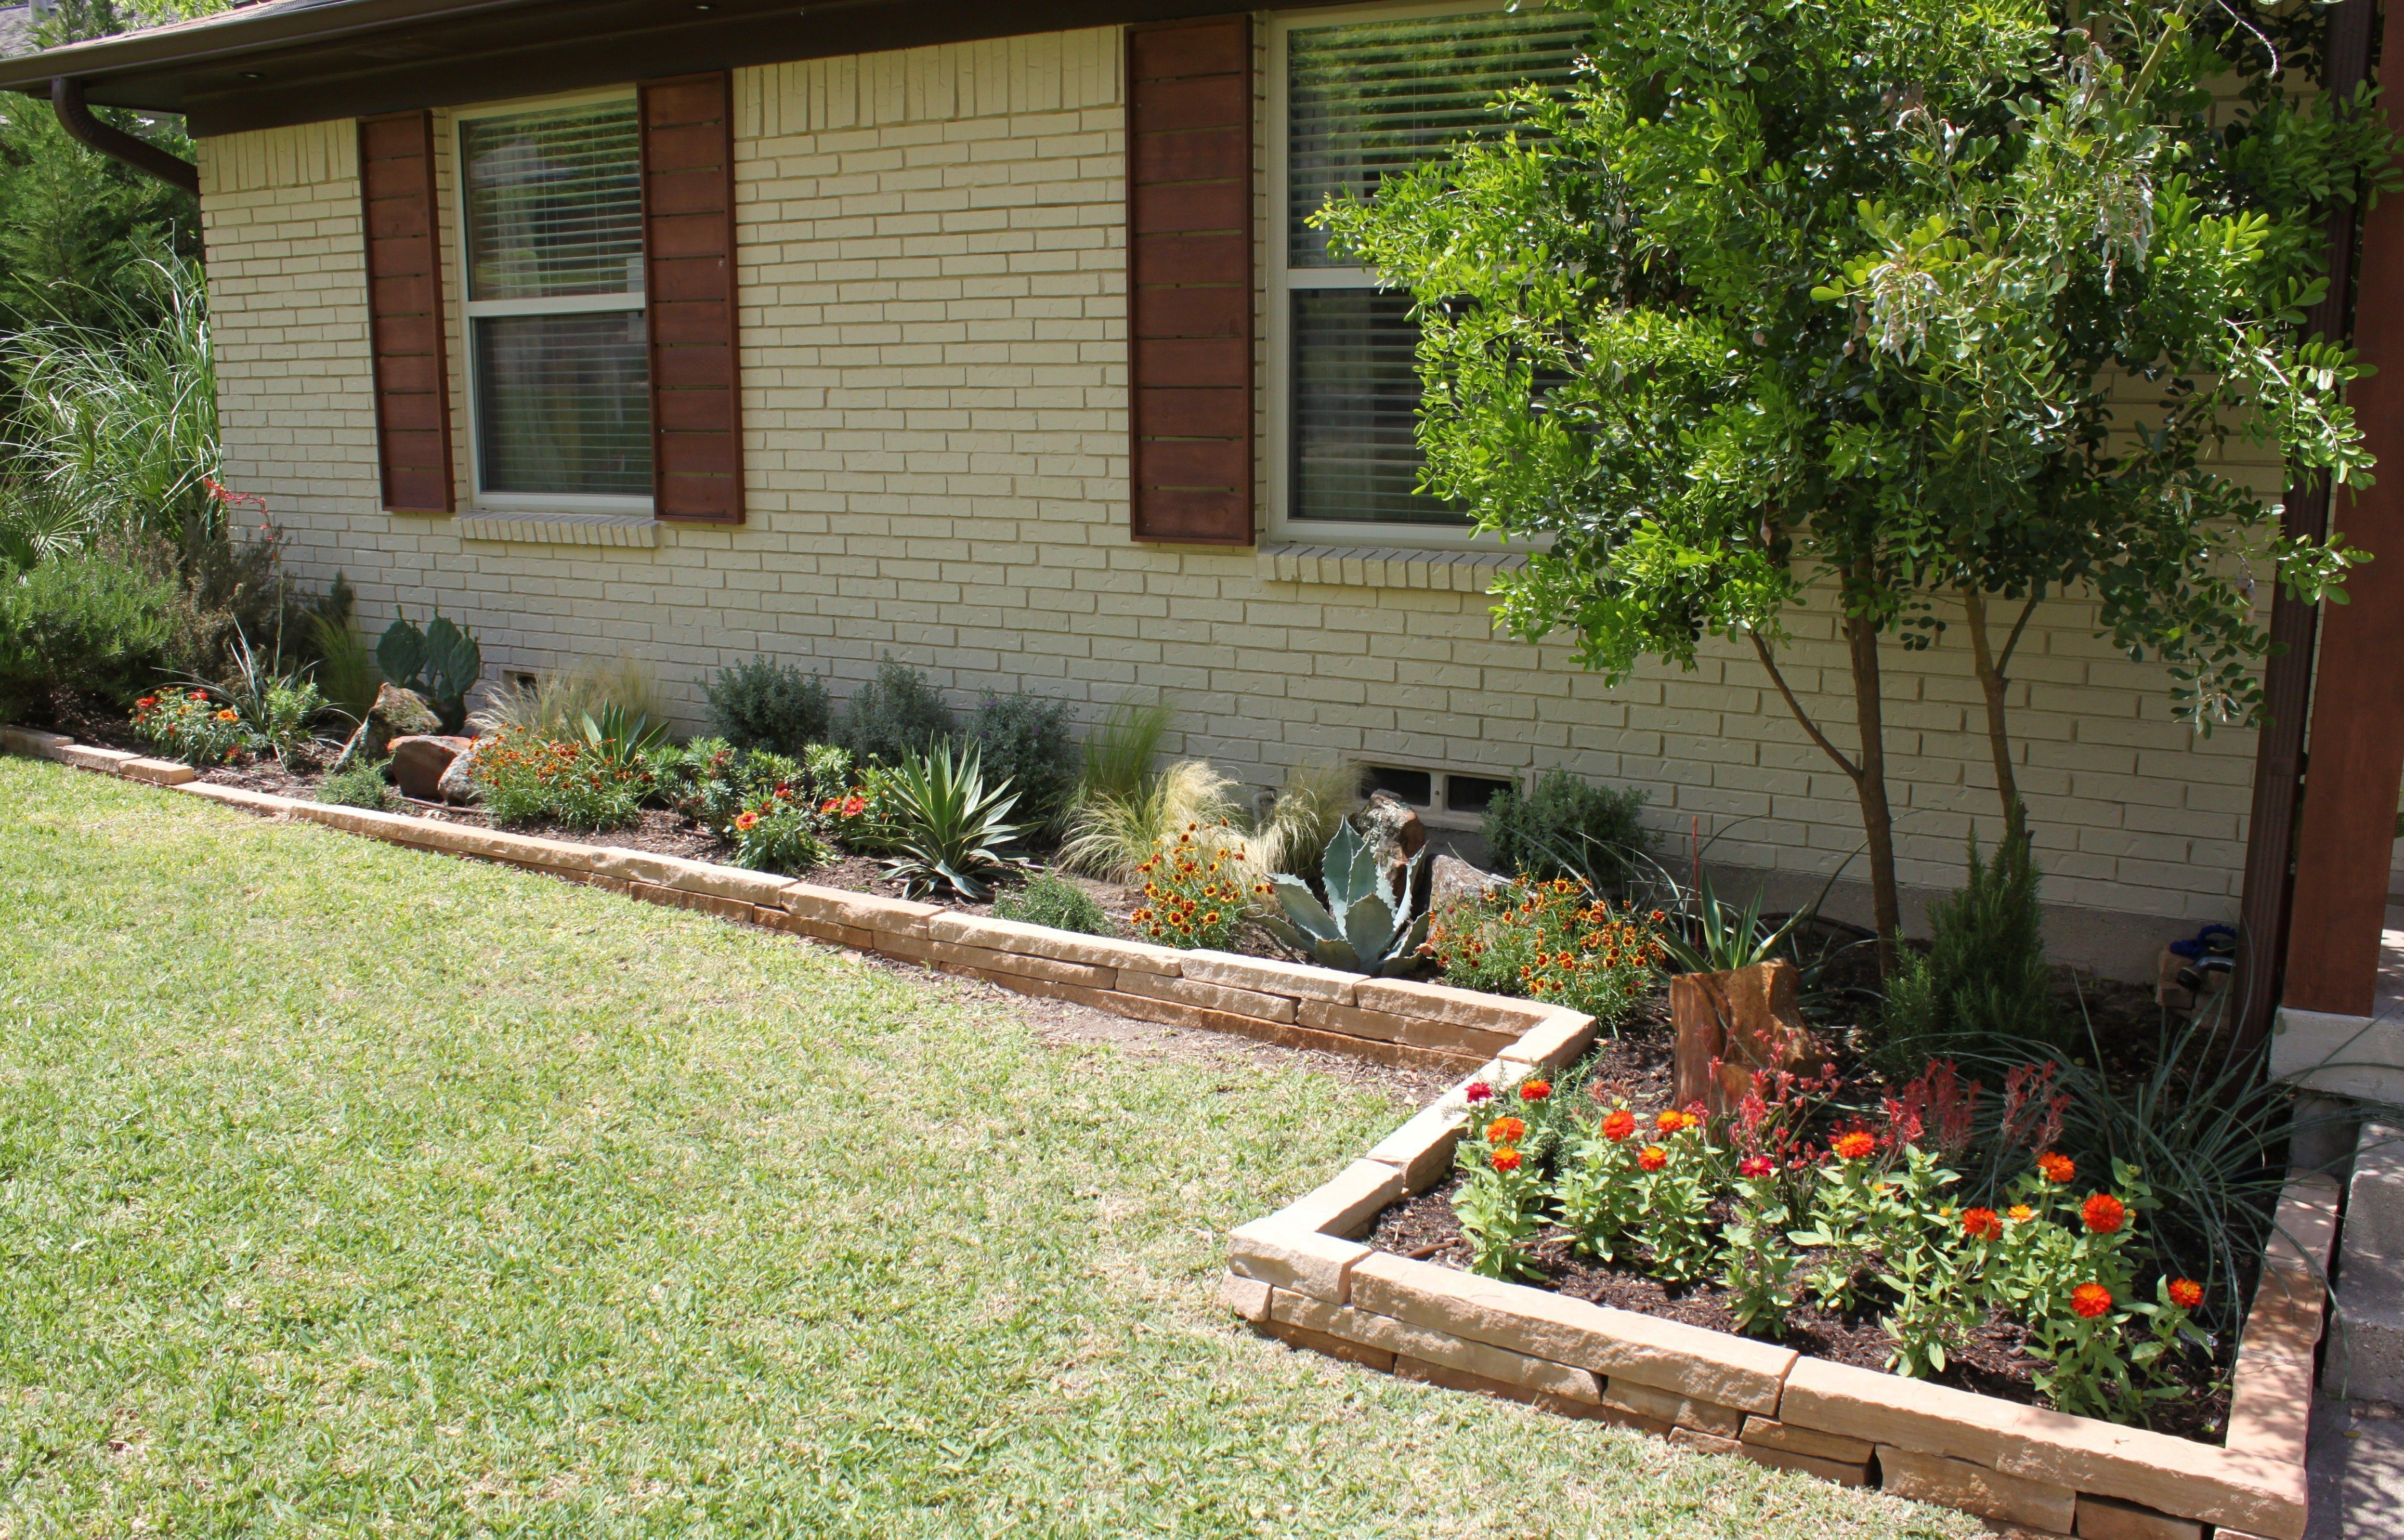 Photo of Raised Garden Bed Ideas Front Of House. Feels free to follow us! #Bed #Descripti…